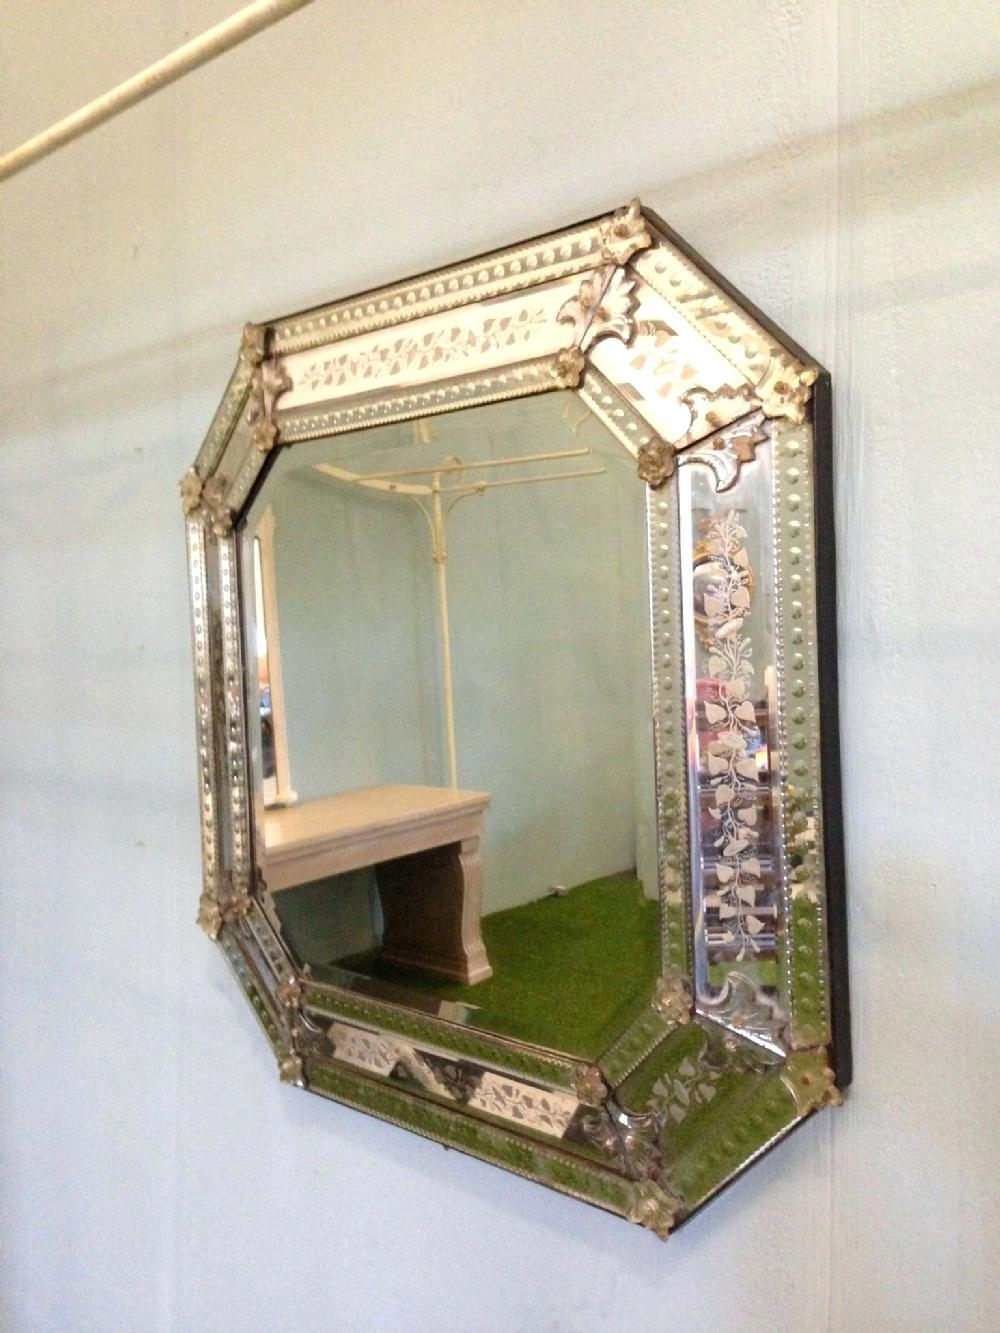 Large Octagonal Venetian Wall Mirror With Decorative Detailed Intended For Large Venetian Wall Mirror (Image 12 of 20)